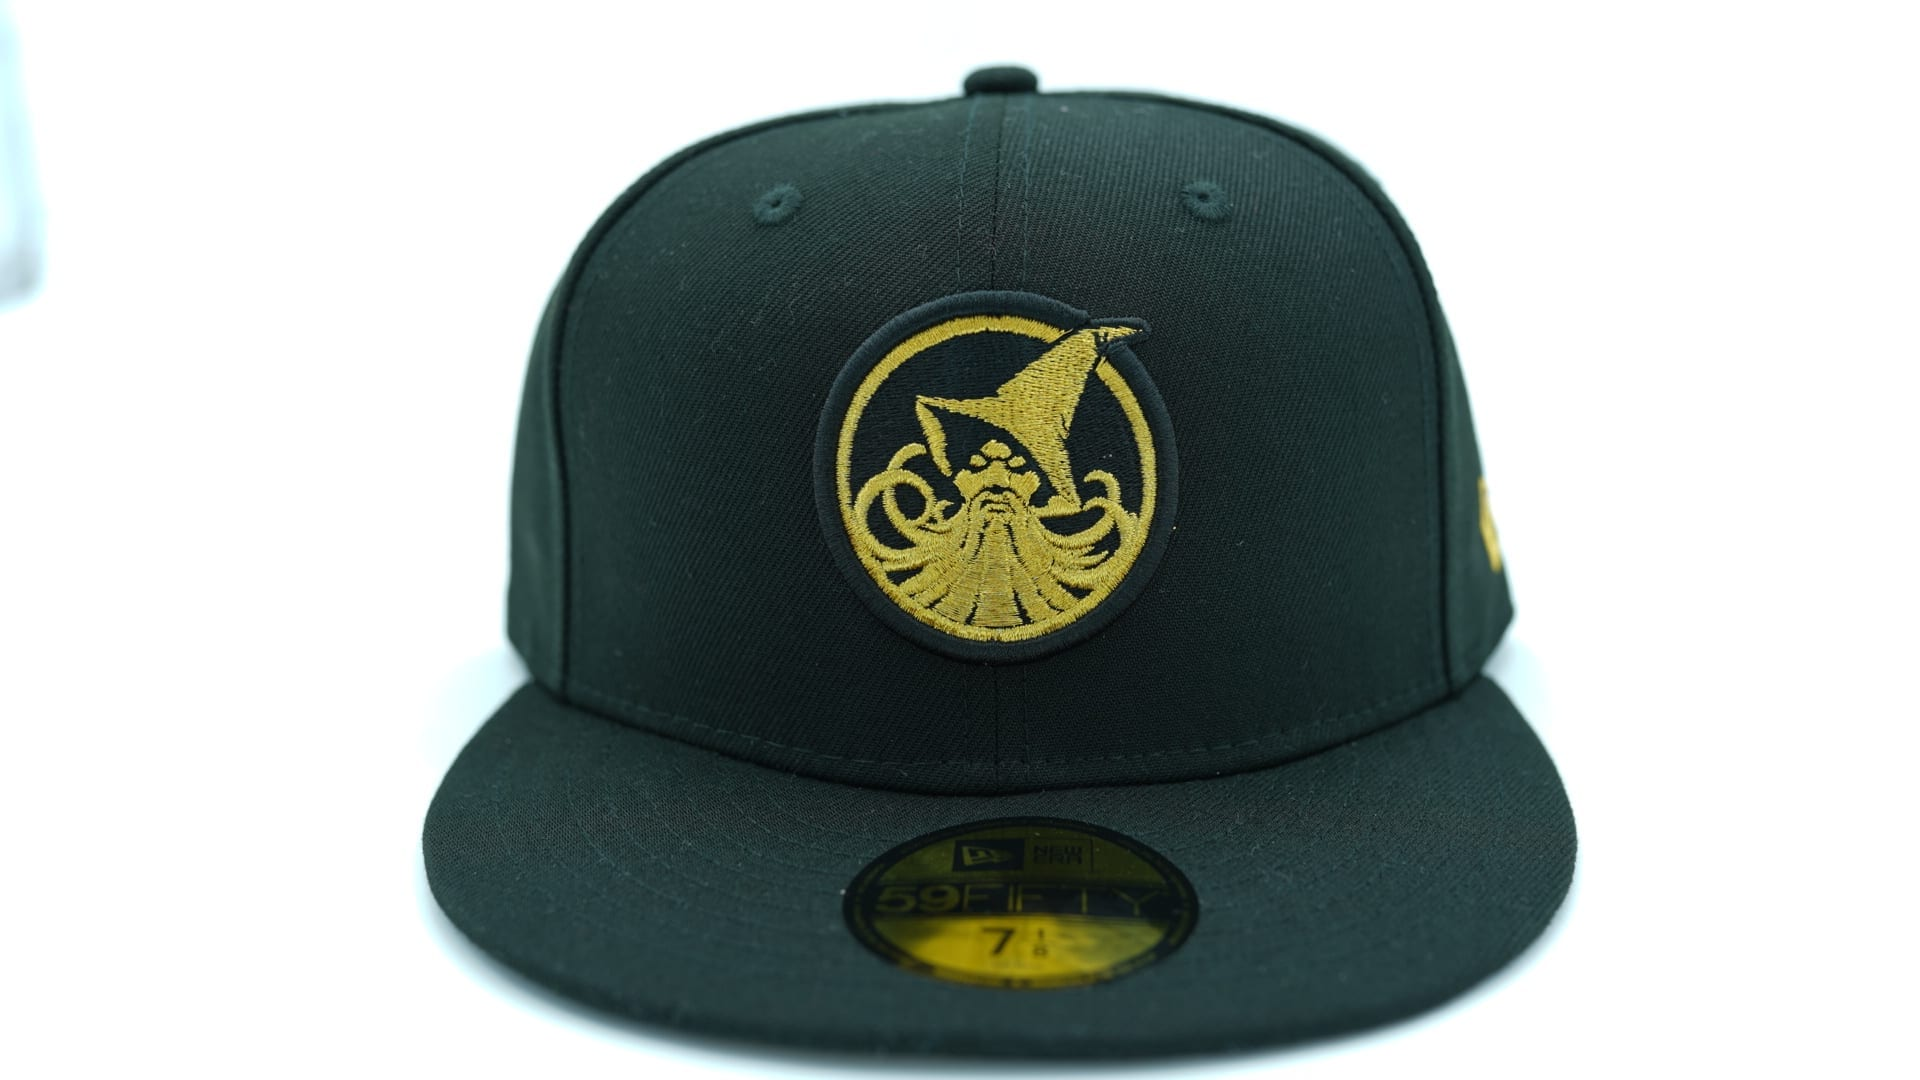 TROY LEE DESIGNS x NEW ERA「Muscle Milk」59Fifty Fitted Baseball Cap ... 321be0fd68d3